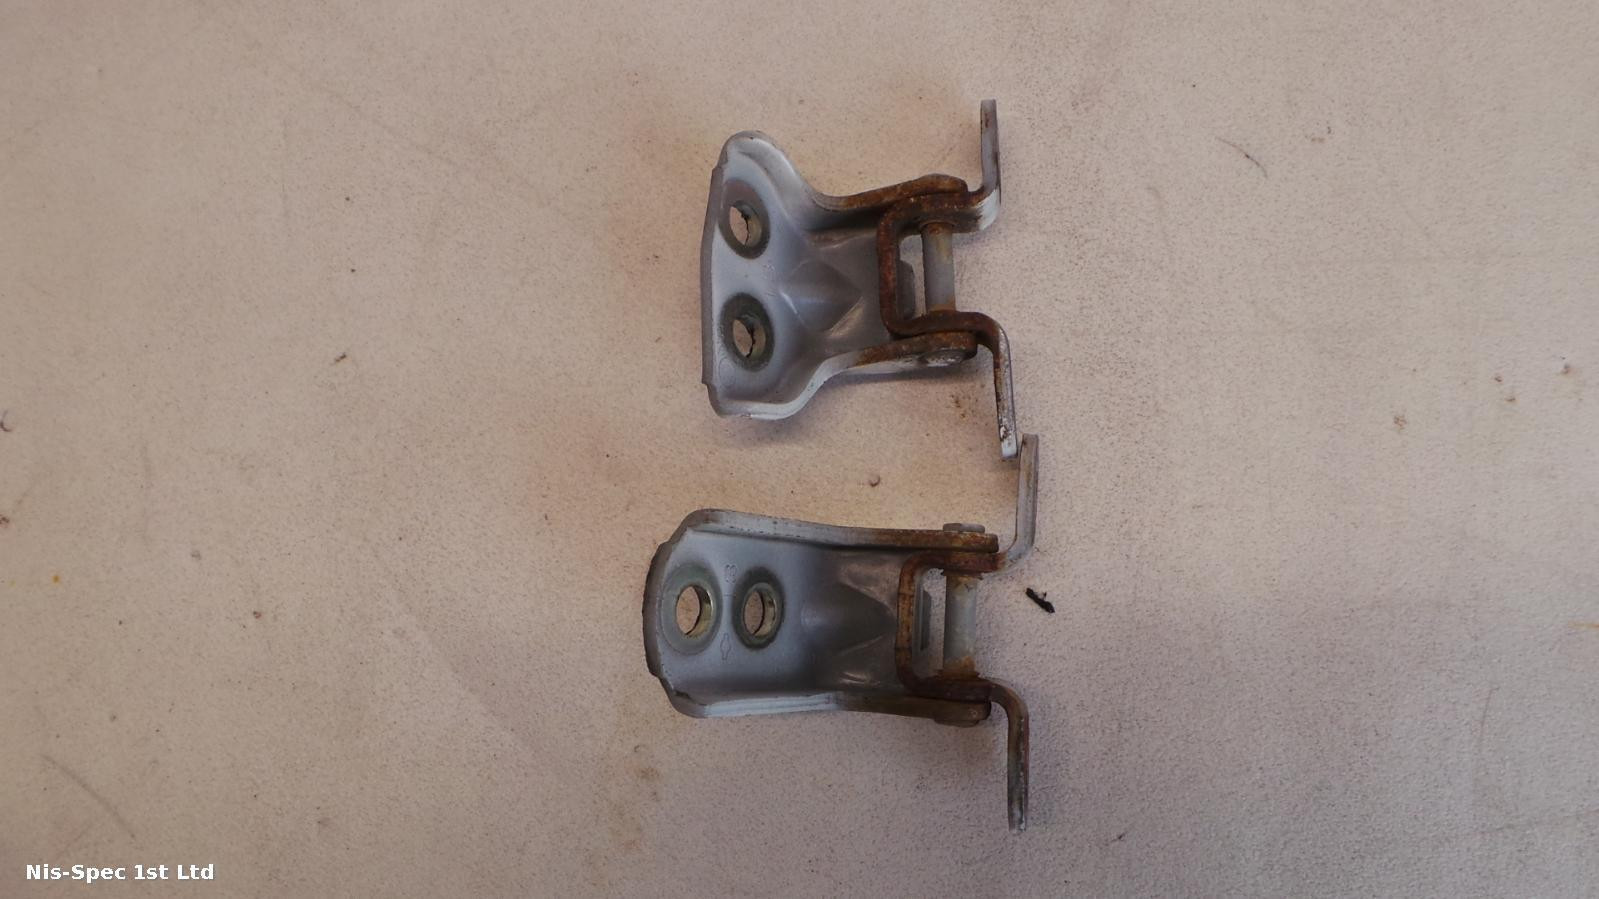 NV200 DRIVERS DOOR HINGES 14-18 OFFSIDE RIGHT FRONT